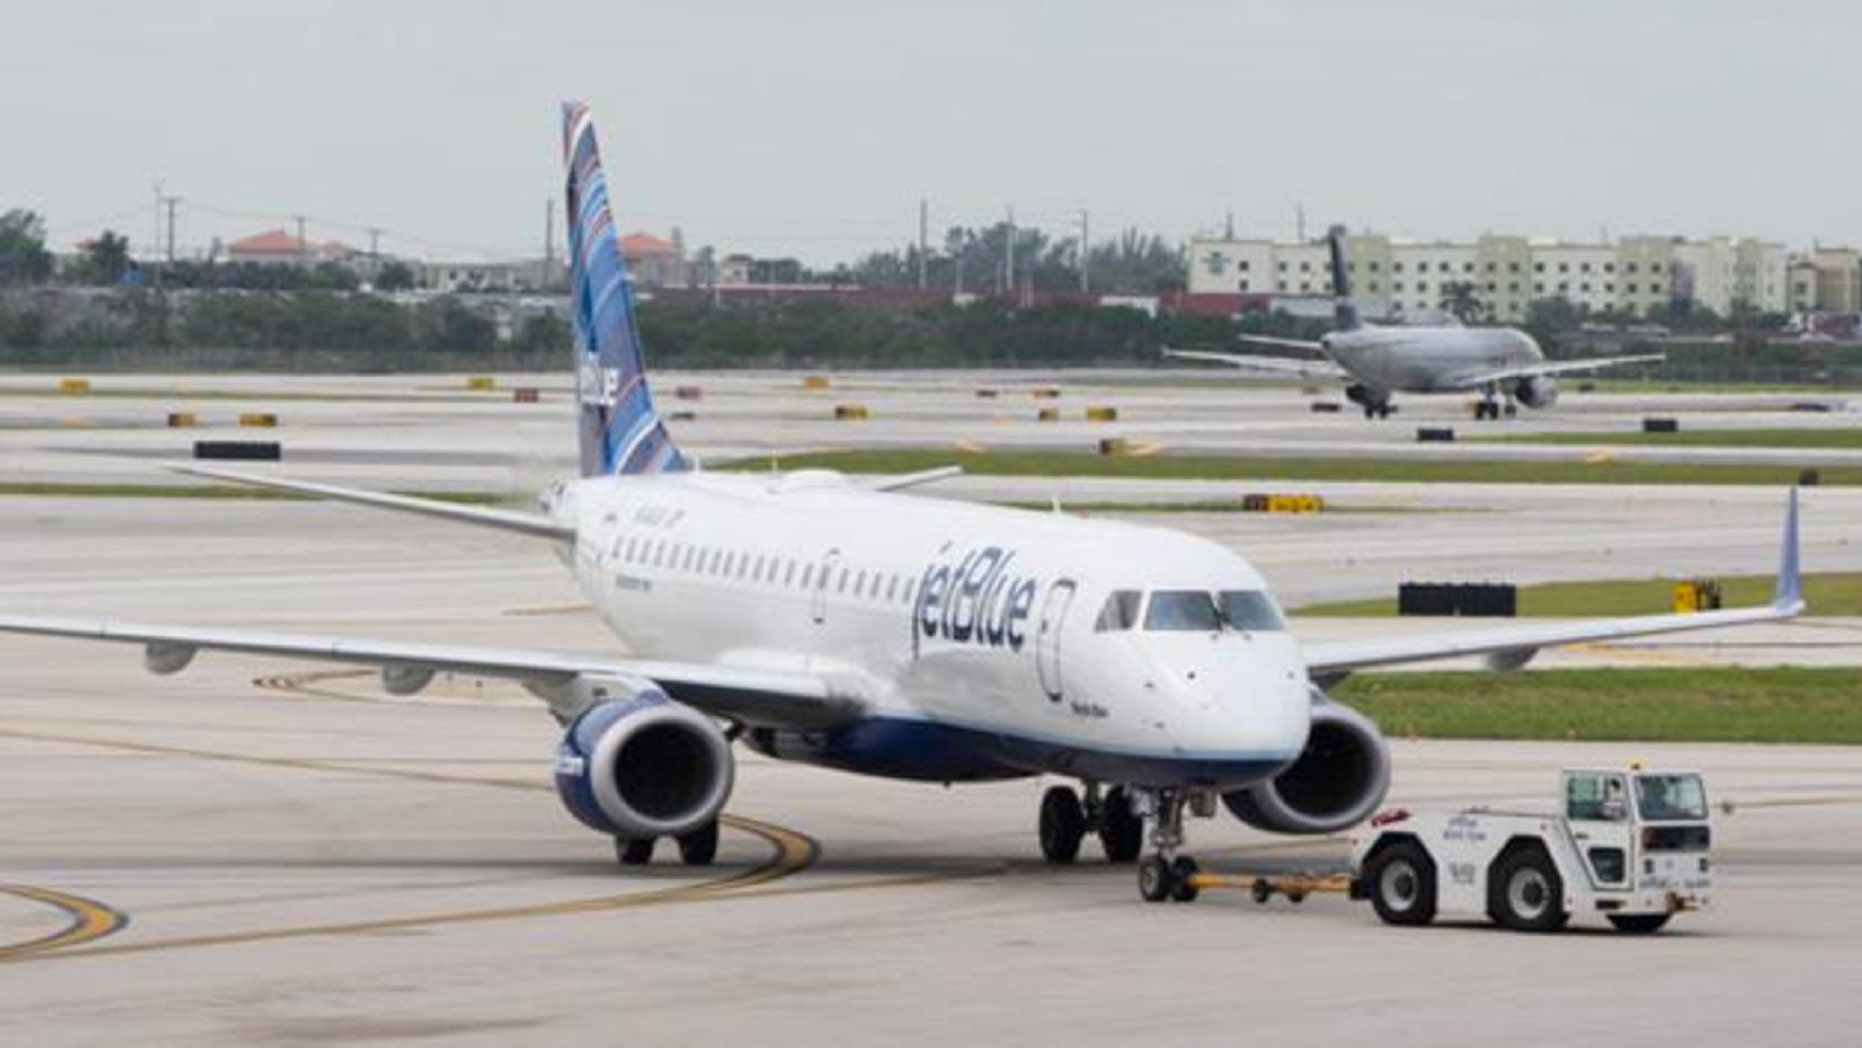 JetBlue's power outage, which affected one of the carrier's data centers, had a ripple effect Thursday from Boston and New York to Los Angeles.